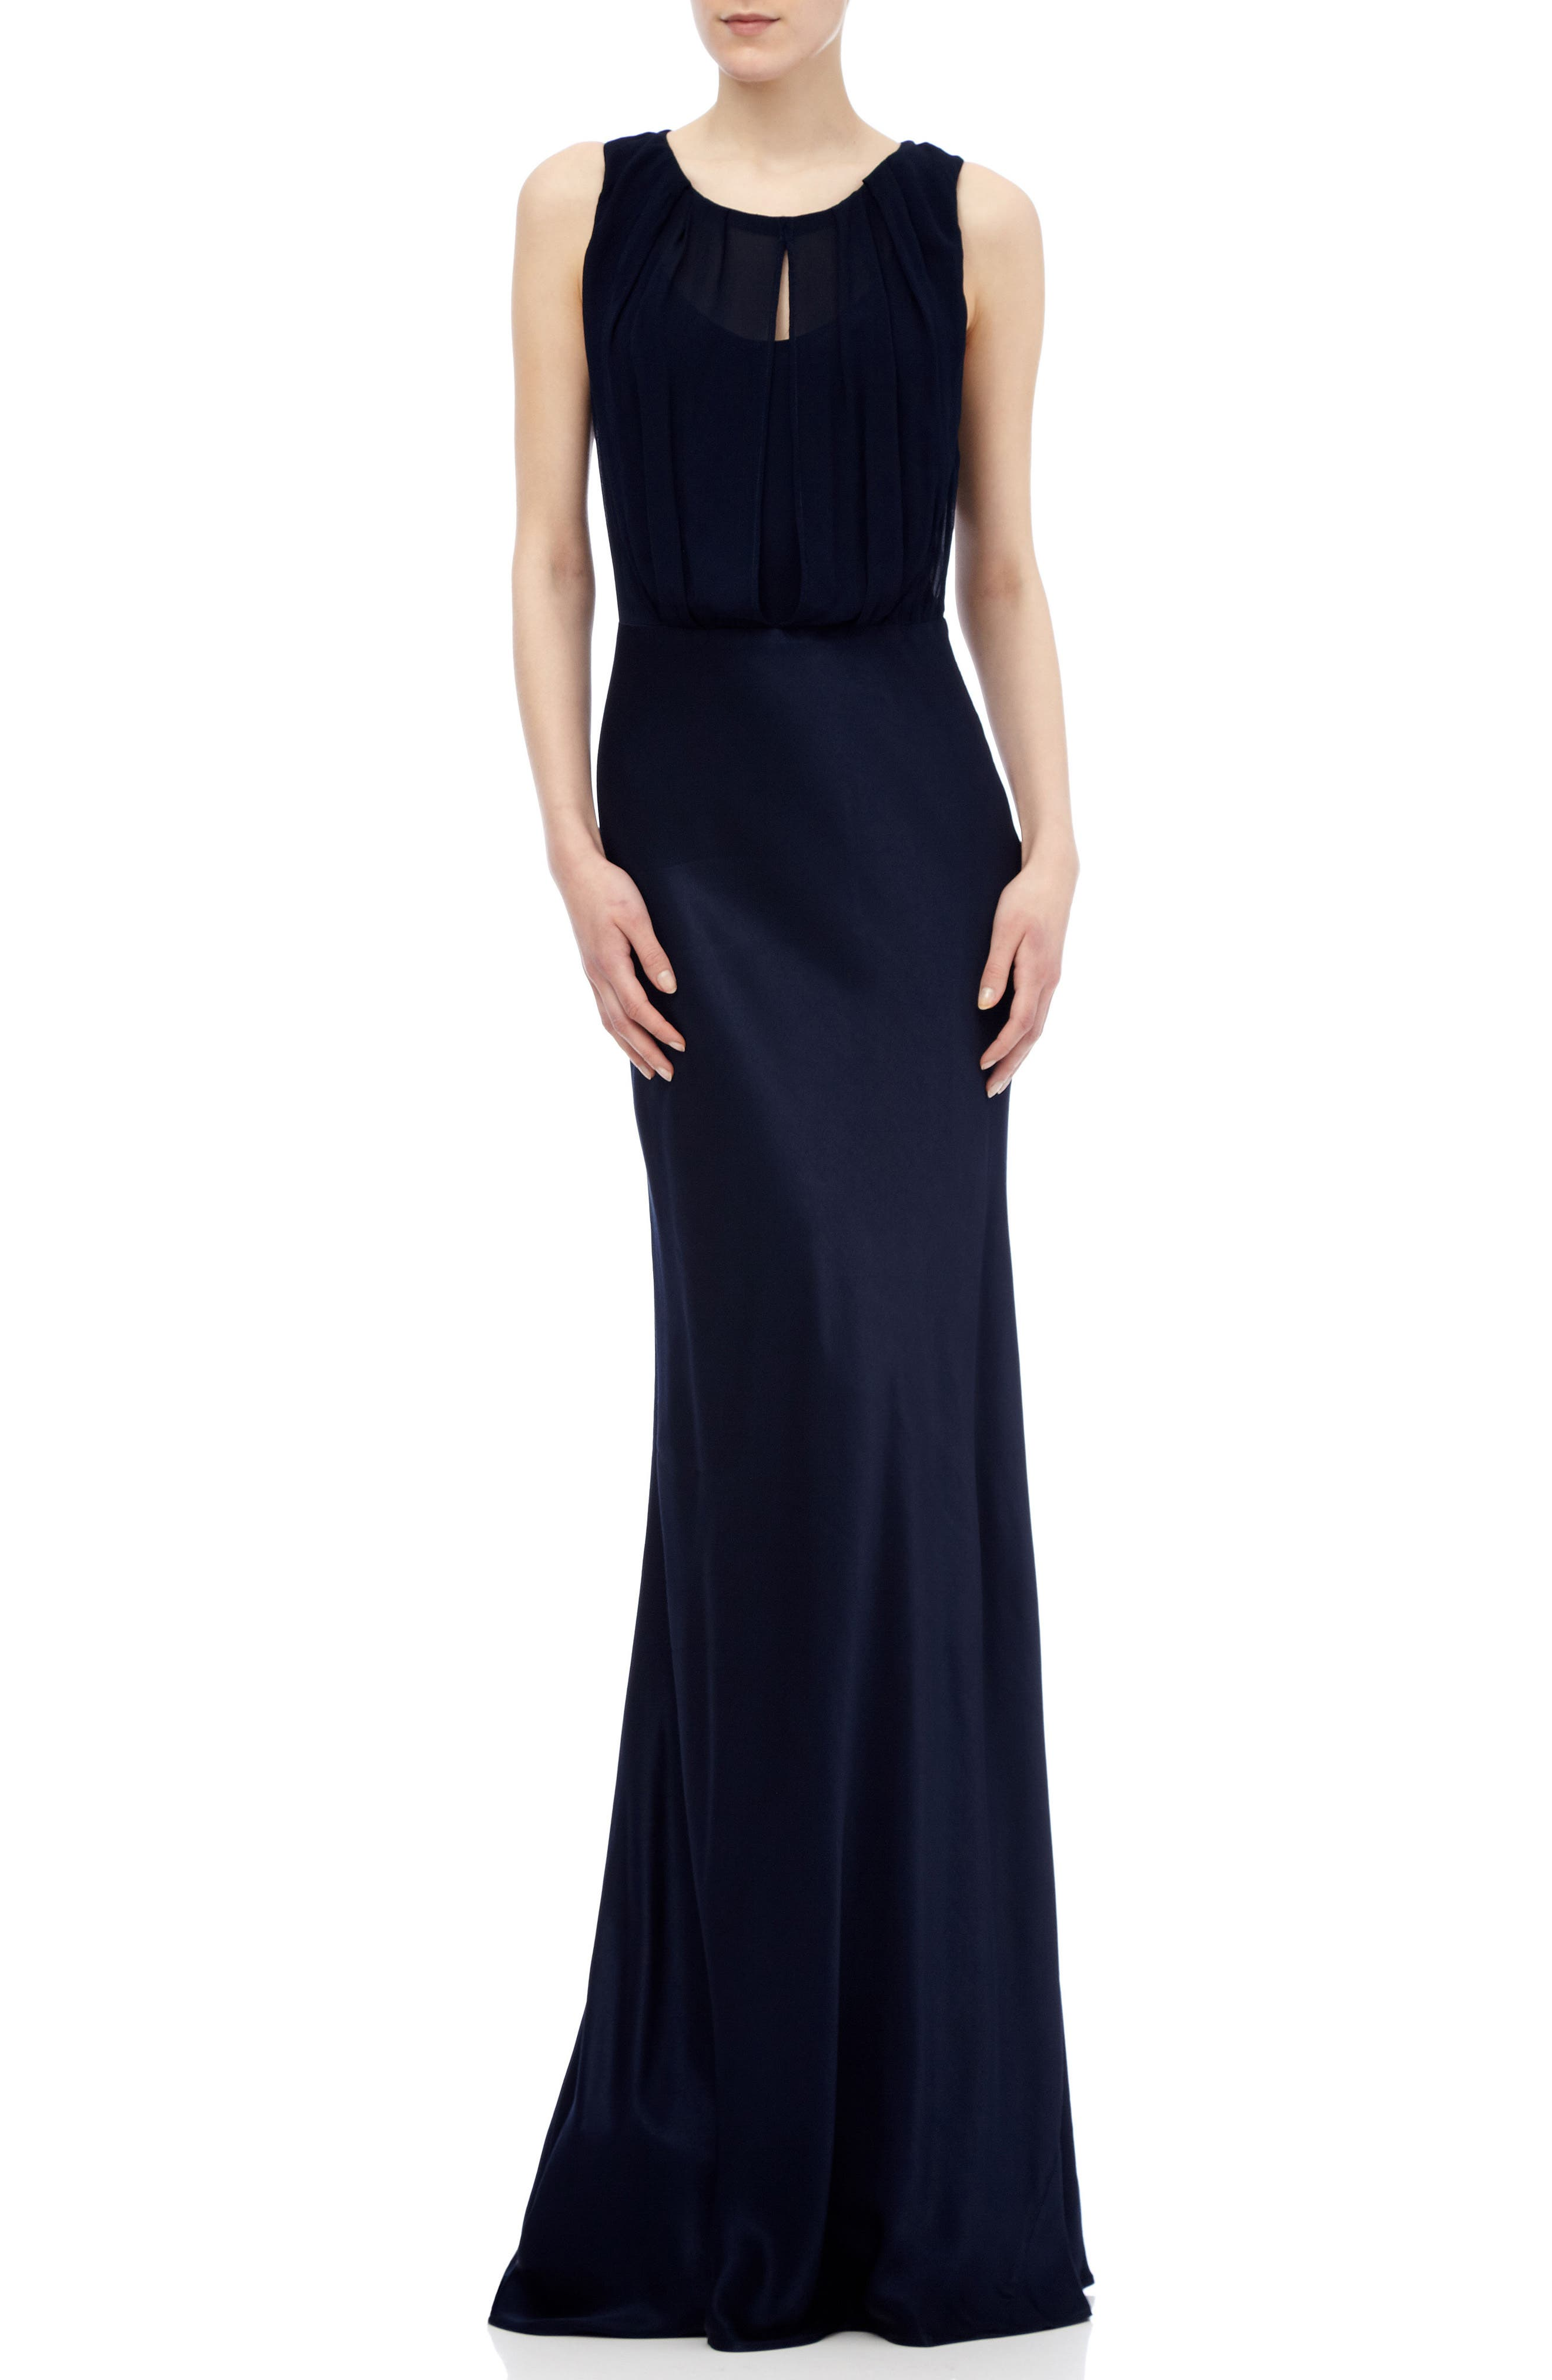 Claudia Cowl Back Gown,                             Main thumbnail 1, color,                             Navy